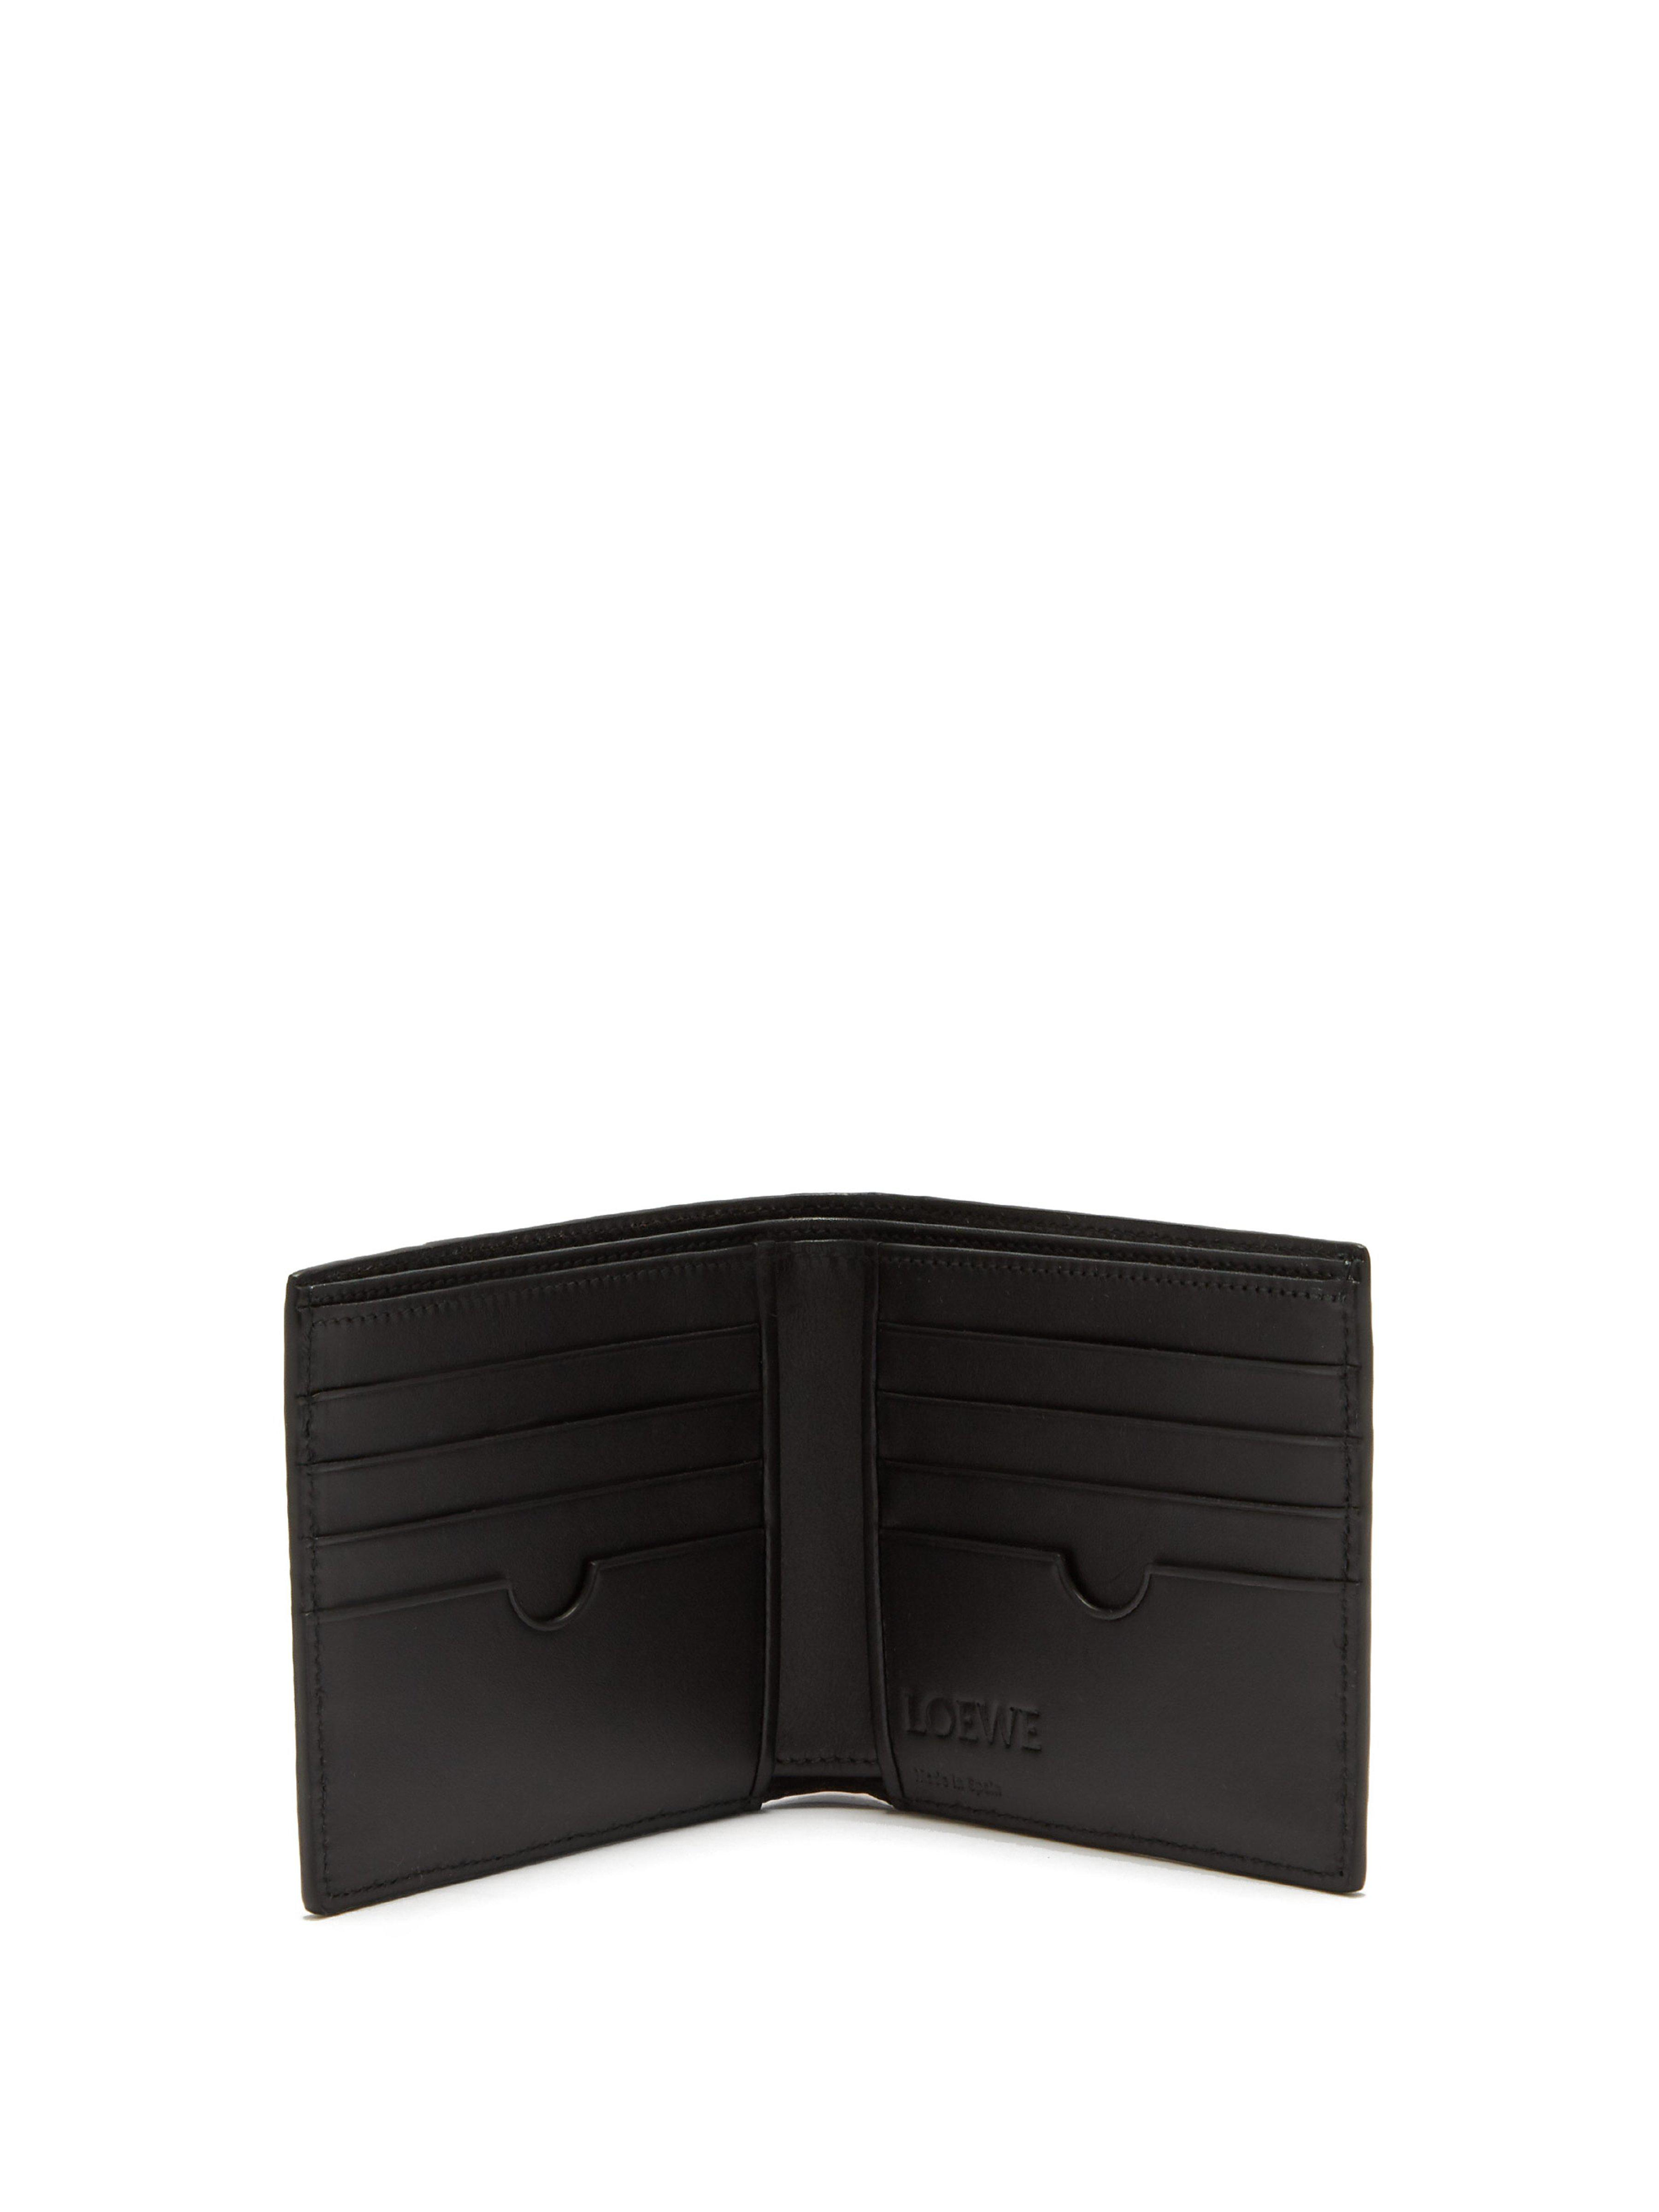 6ee7802b12503a Loewe Puzzle Grained Leather Bi Fold Wallet for Men - Lyst